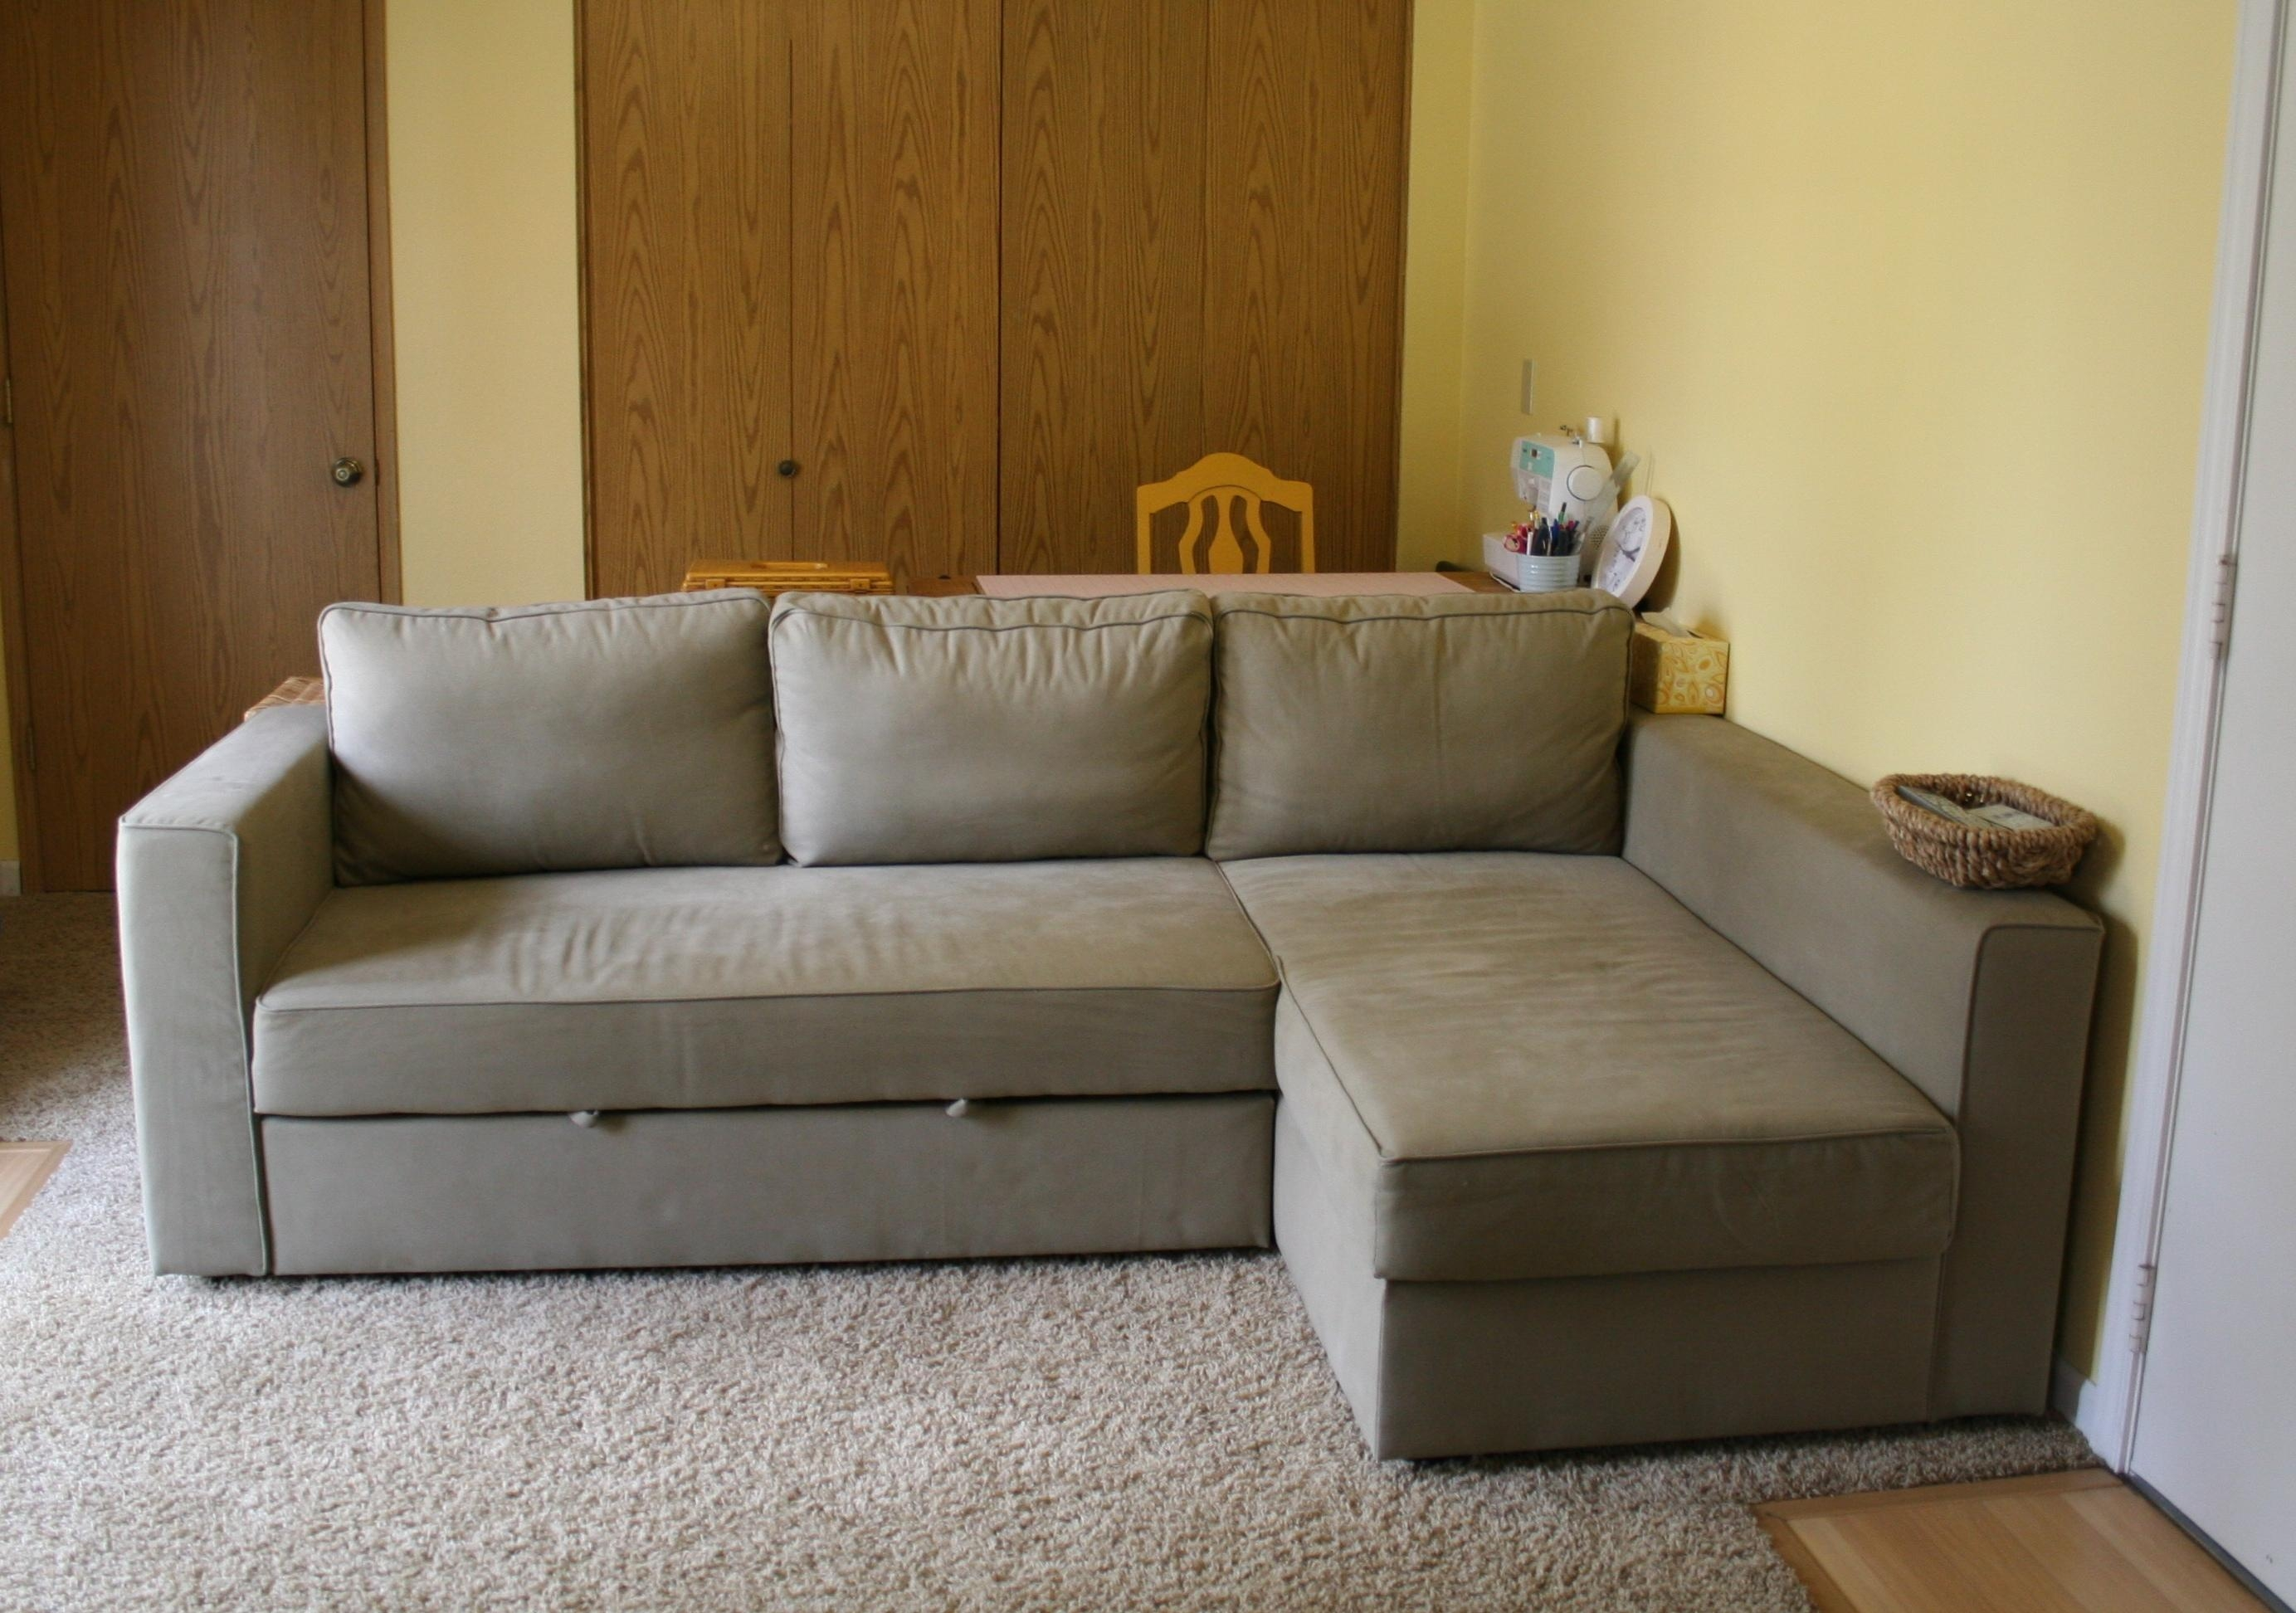 Manstad Ikea Sofa – Leather Sectional Sofa For Manstad Sofa Bed With Storage From Ikea (View 7 of 20)